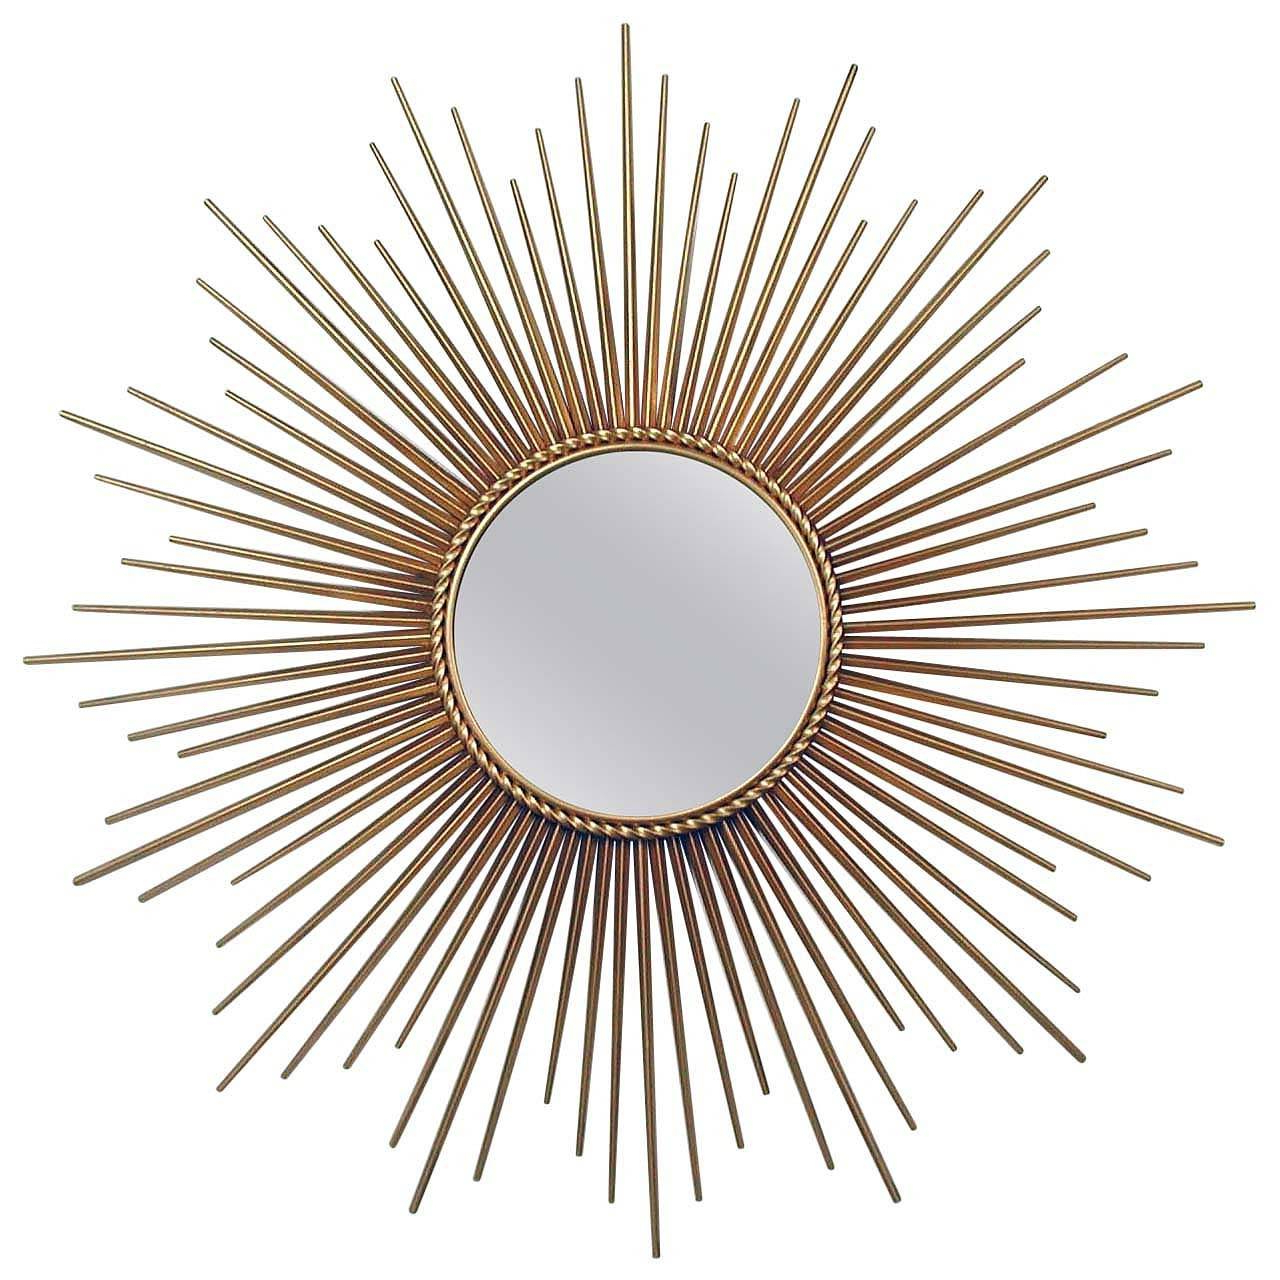 Favorite Large French Chaty Vallauris Gilt Sunburst Starburst Wall Mirror 1950S Intended For Starburst Wall Mirrors (View 4 of 20)